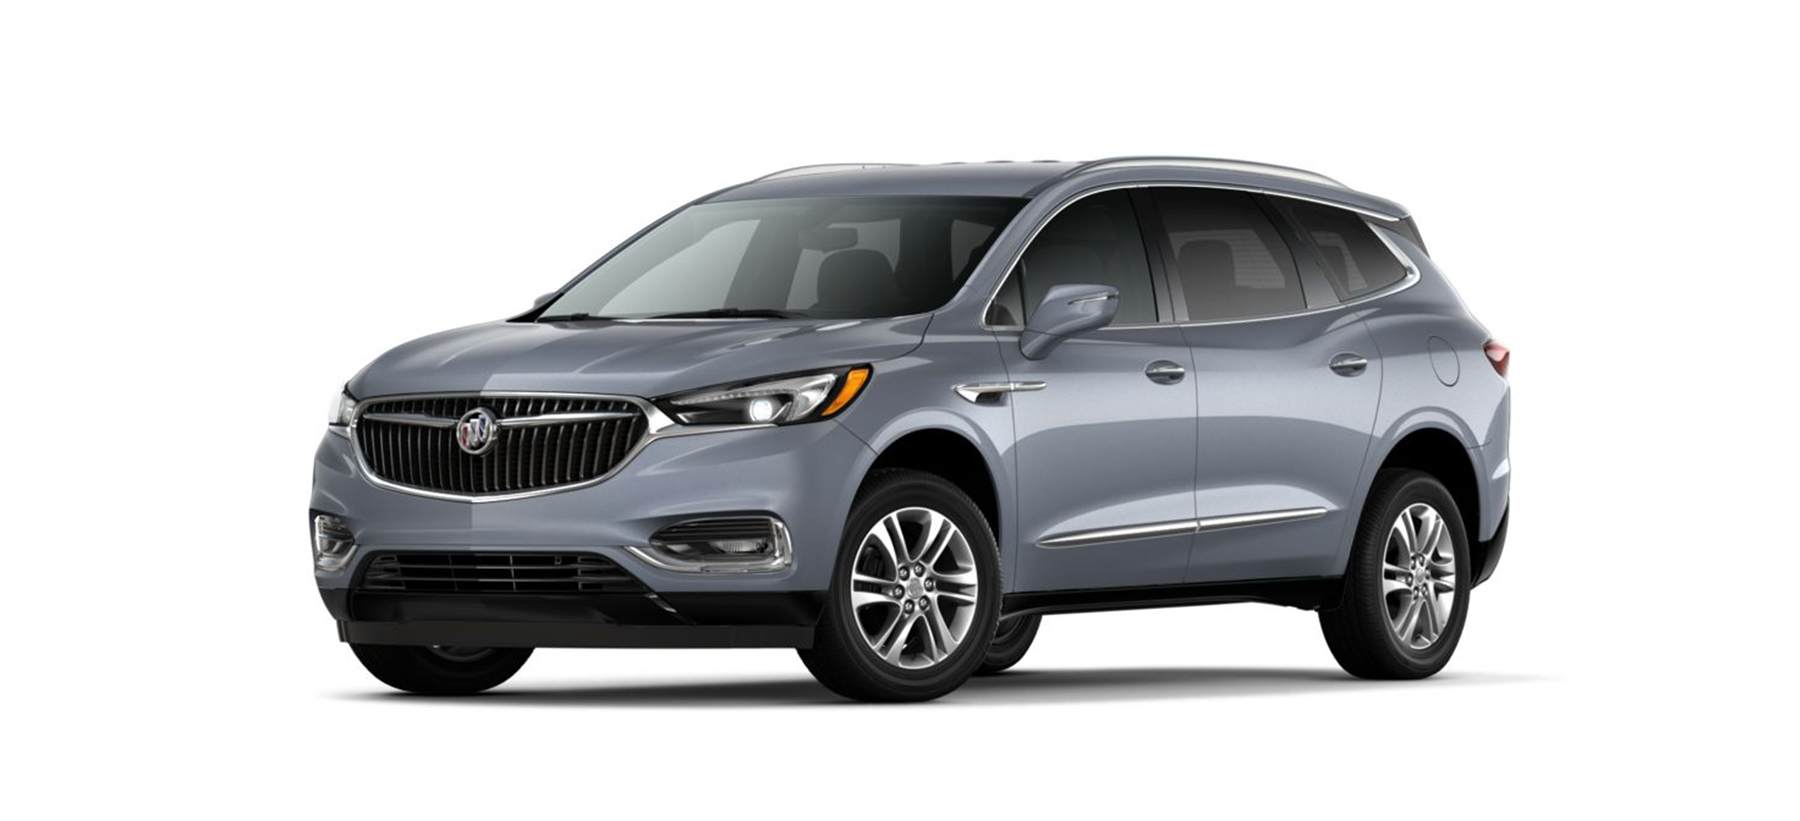 2020 Buick Enclave Main Img